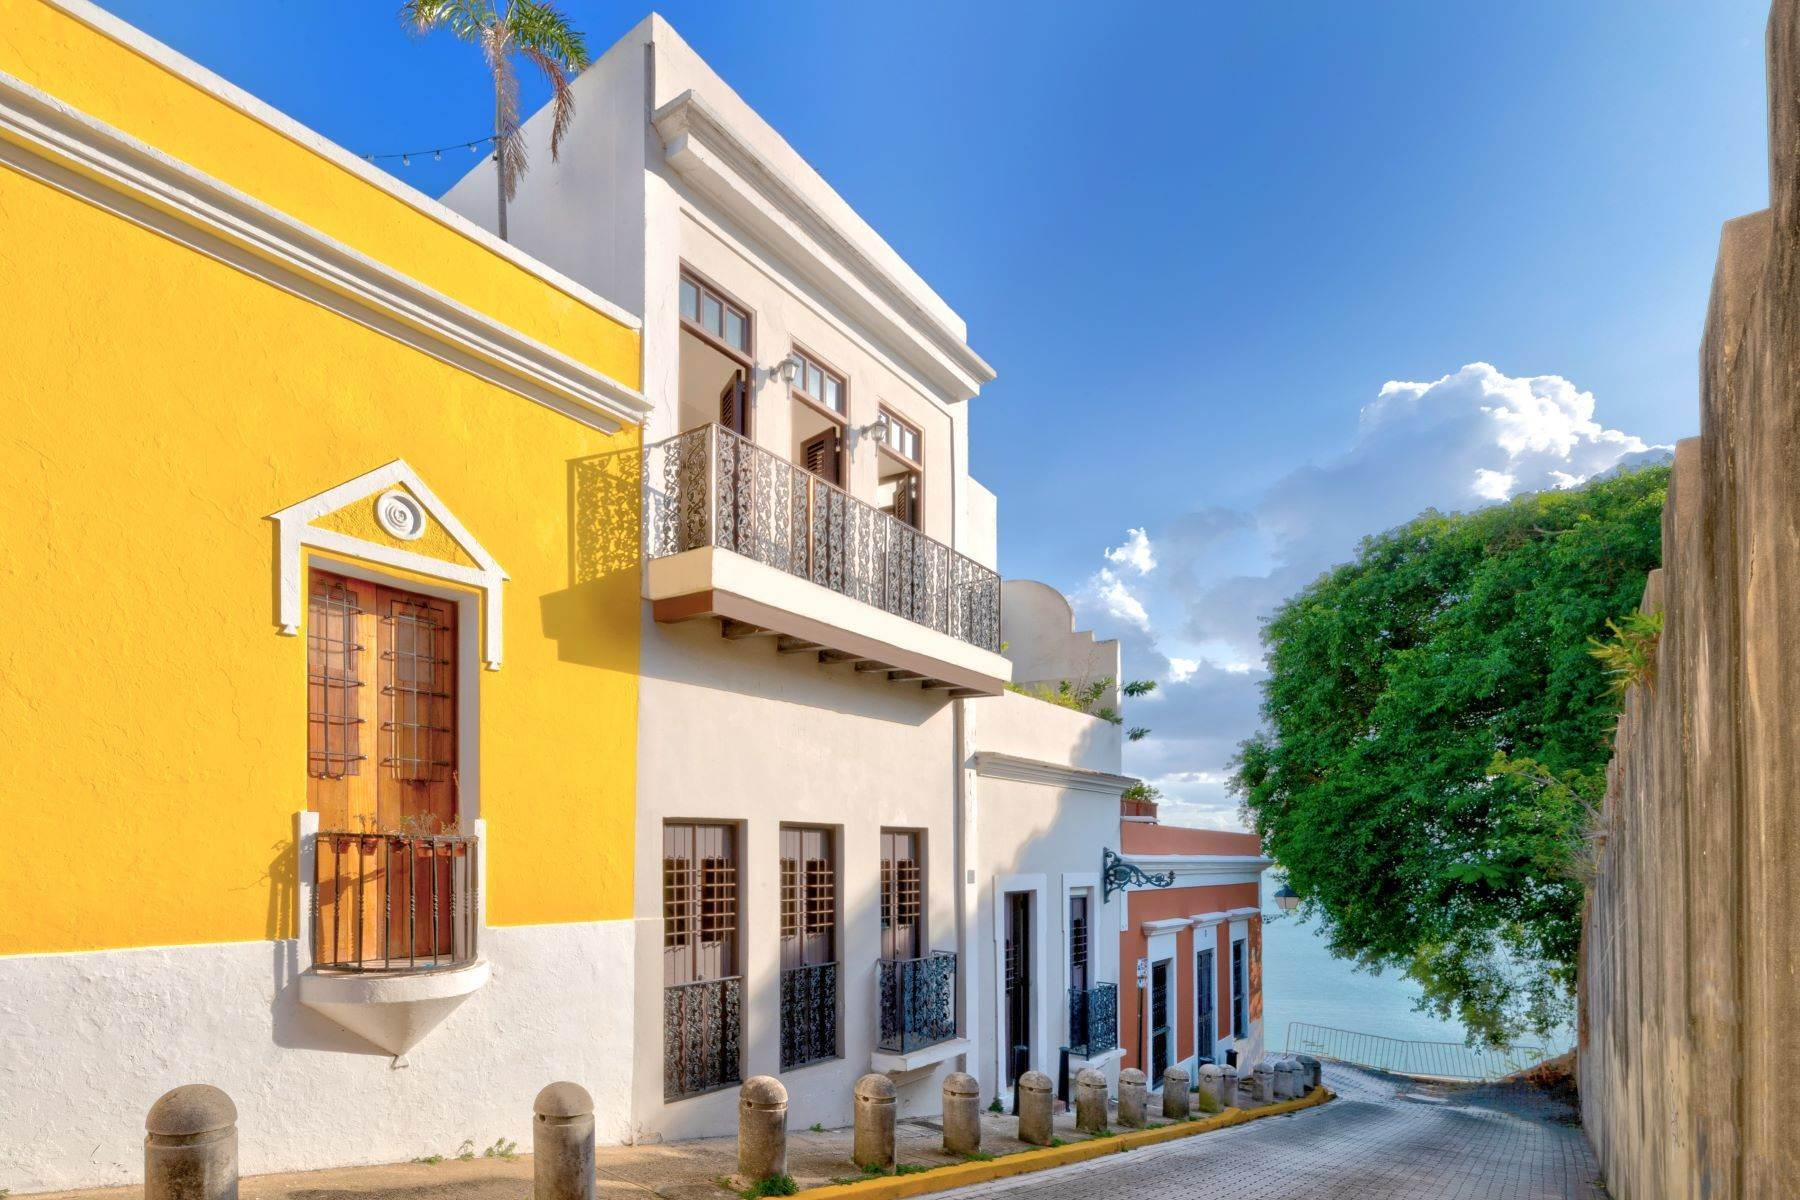 Single Family Homes for Sale at Splendid Old San Juan Living by the Bay 4 Sol St. Old San Juan, 00901 Puerto Rico